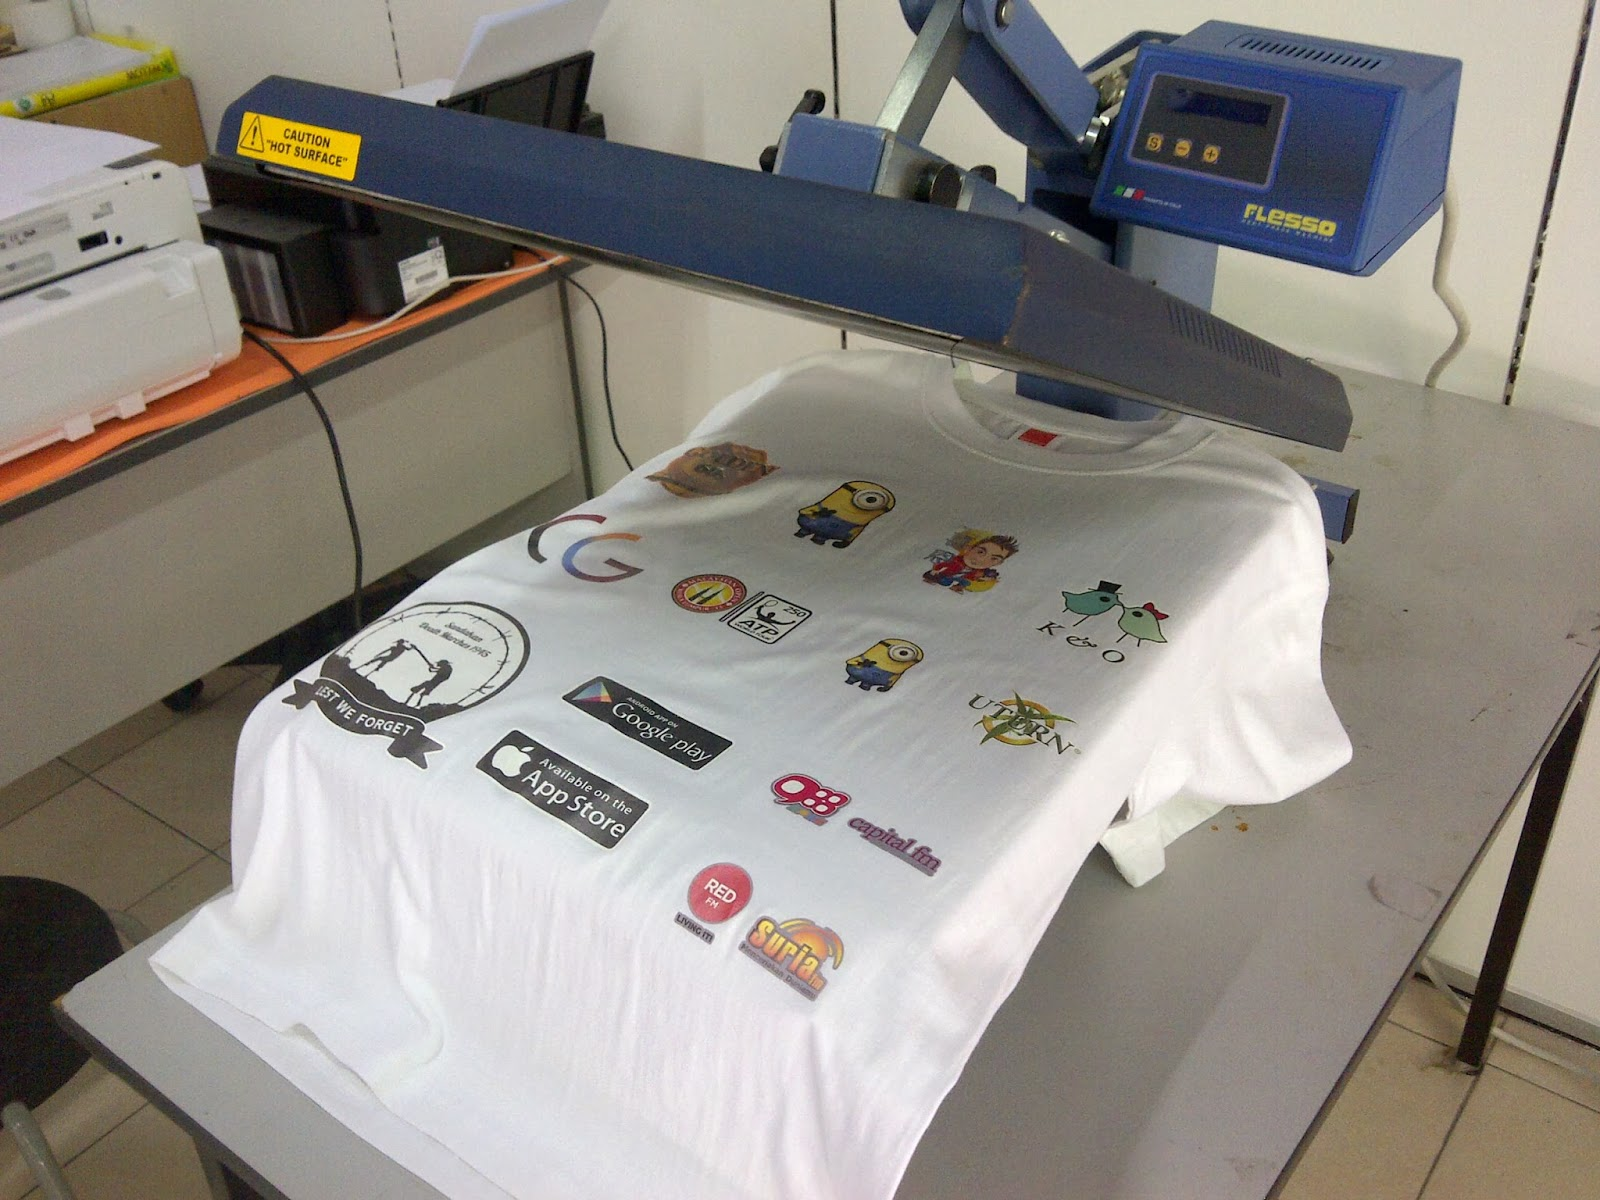 Tshirt printing mug printing in kl button badge heat for Machine for printing on t shirts